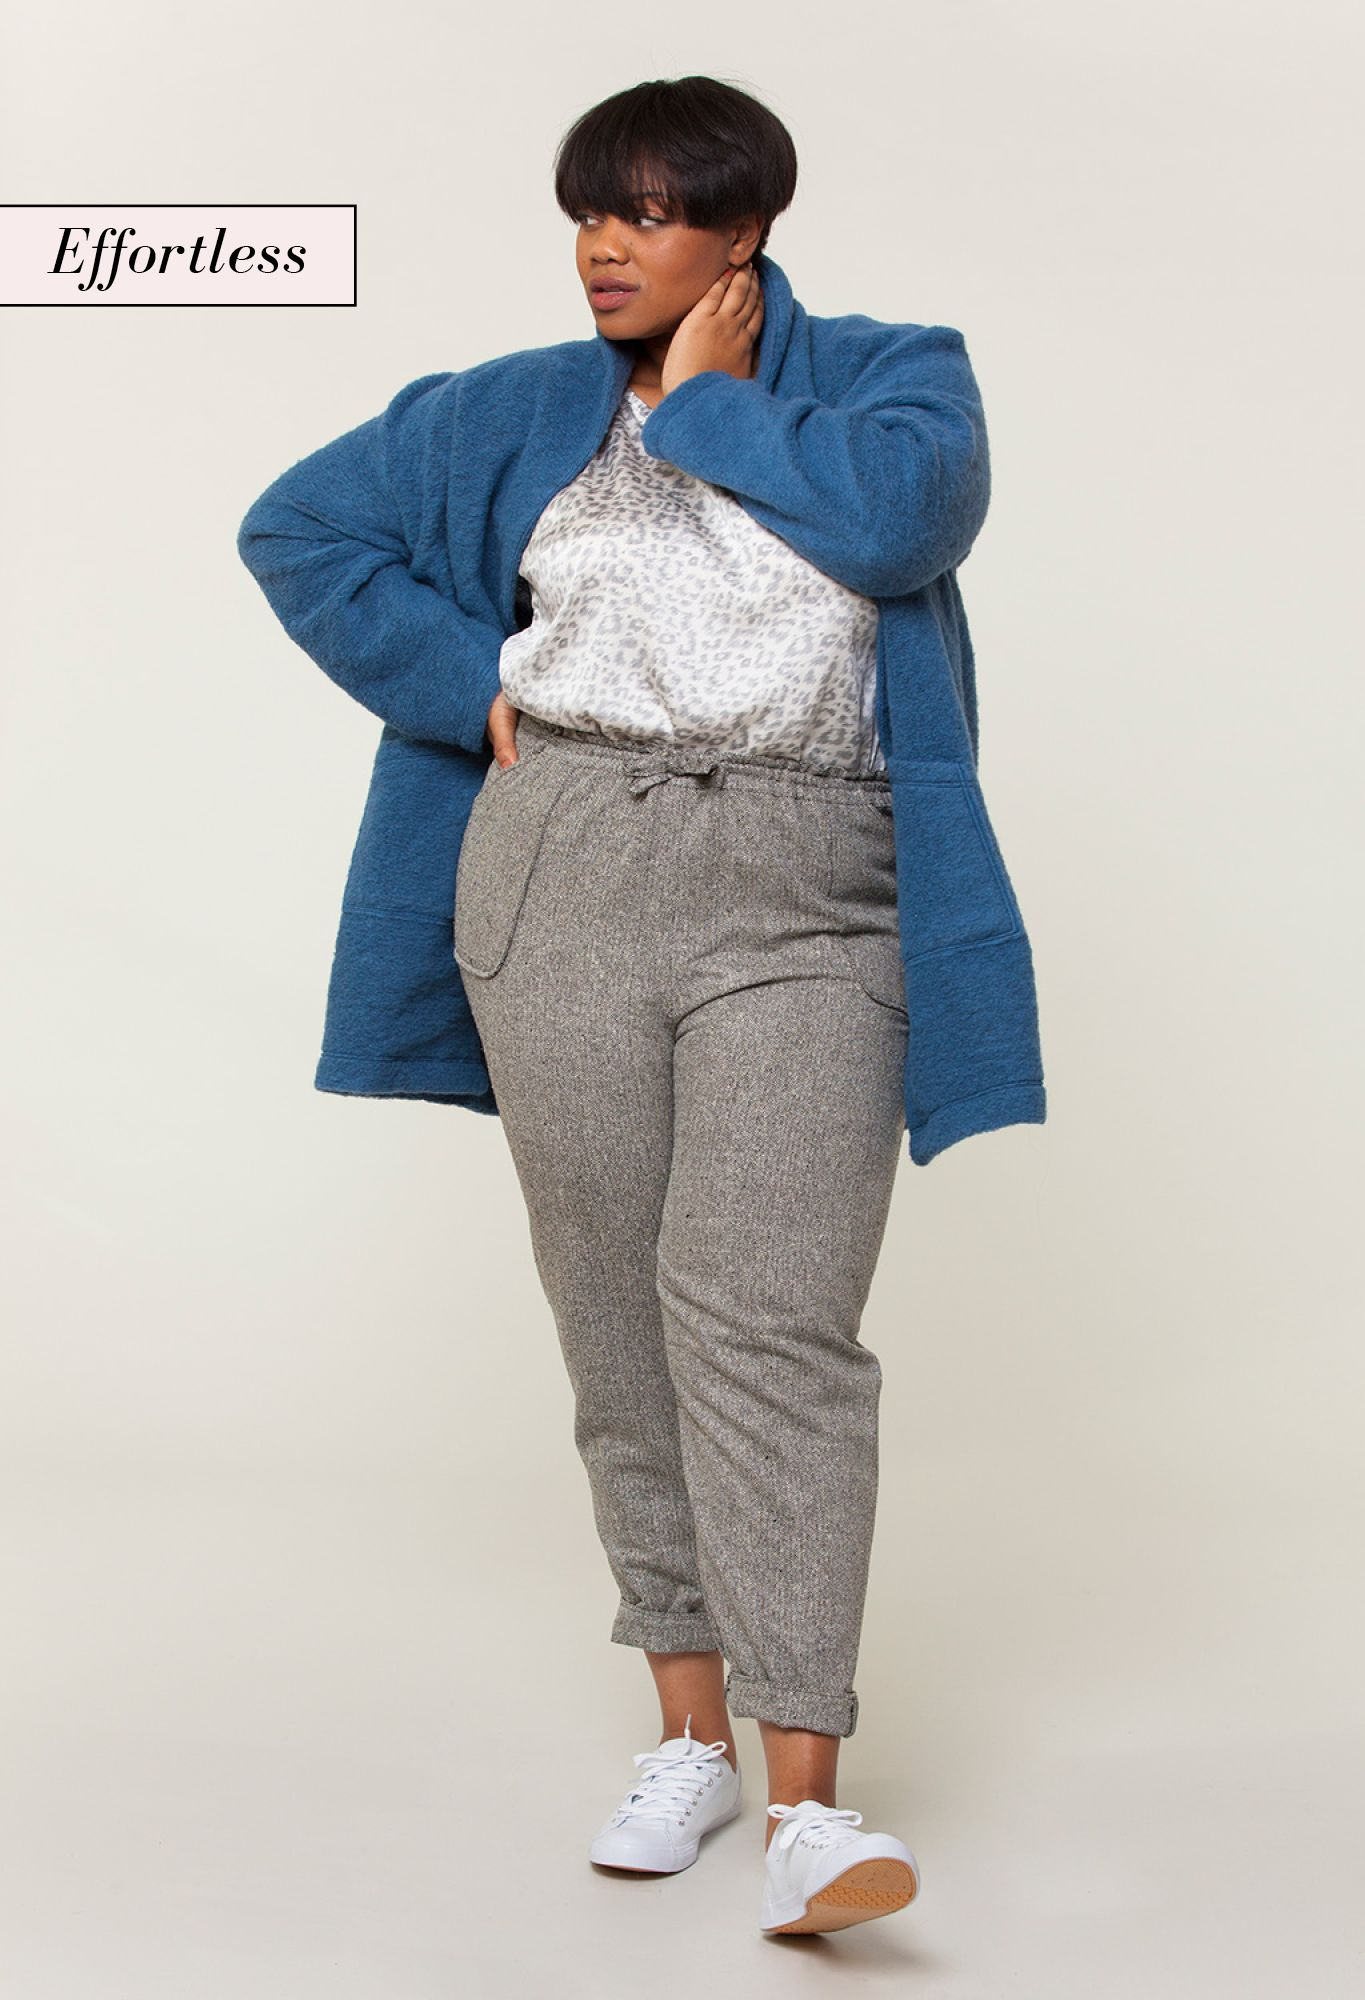 Outfit inspiration from Seamwork Style - Sew this relaxed and cozy ...